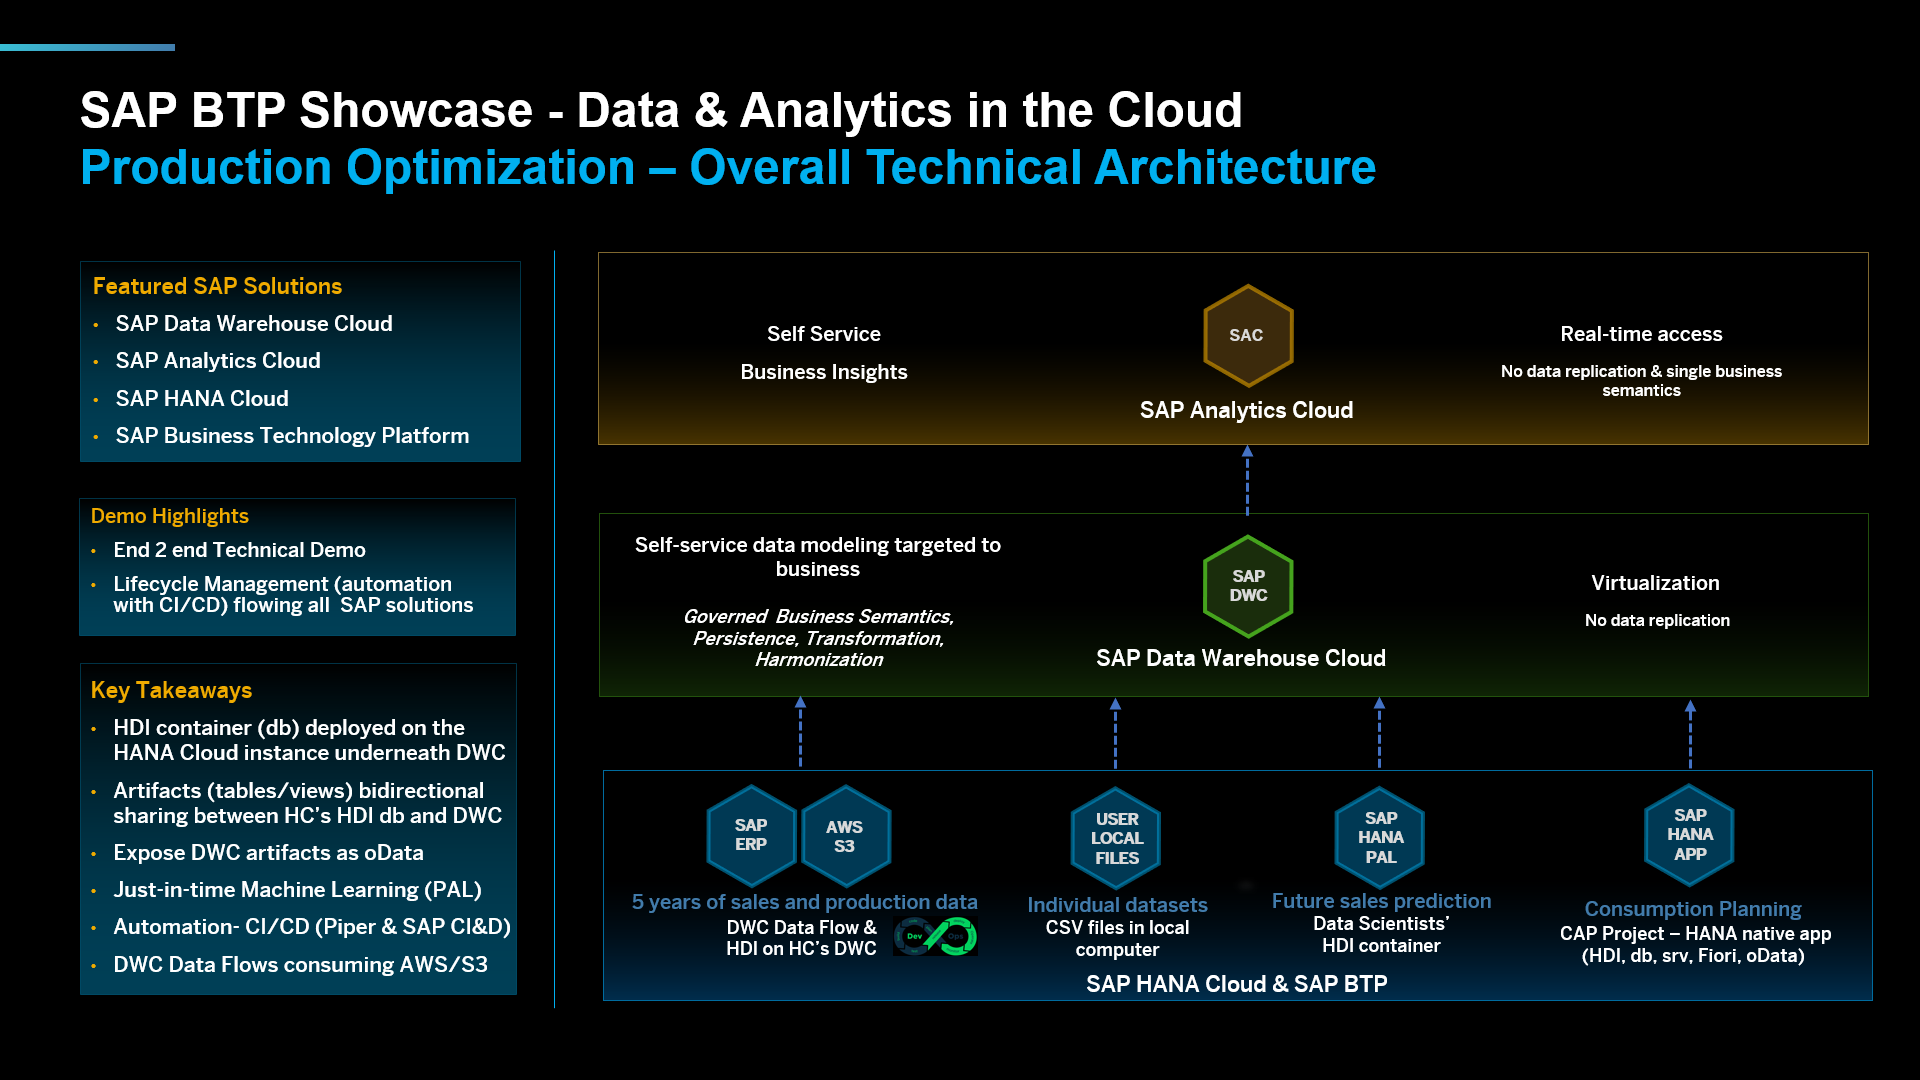 Overall%20Technical%20Architecture%20porposed%20by%20SAP